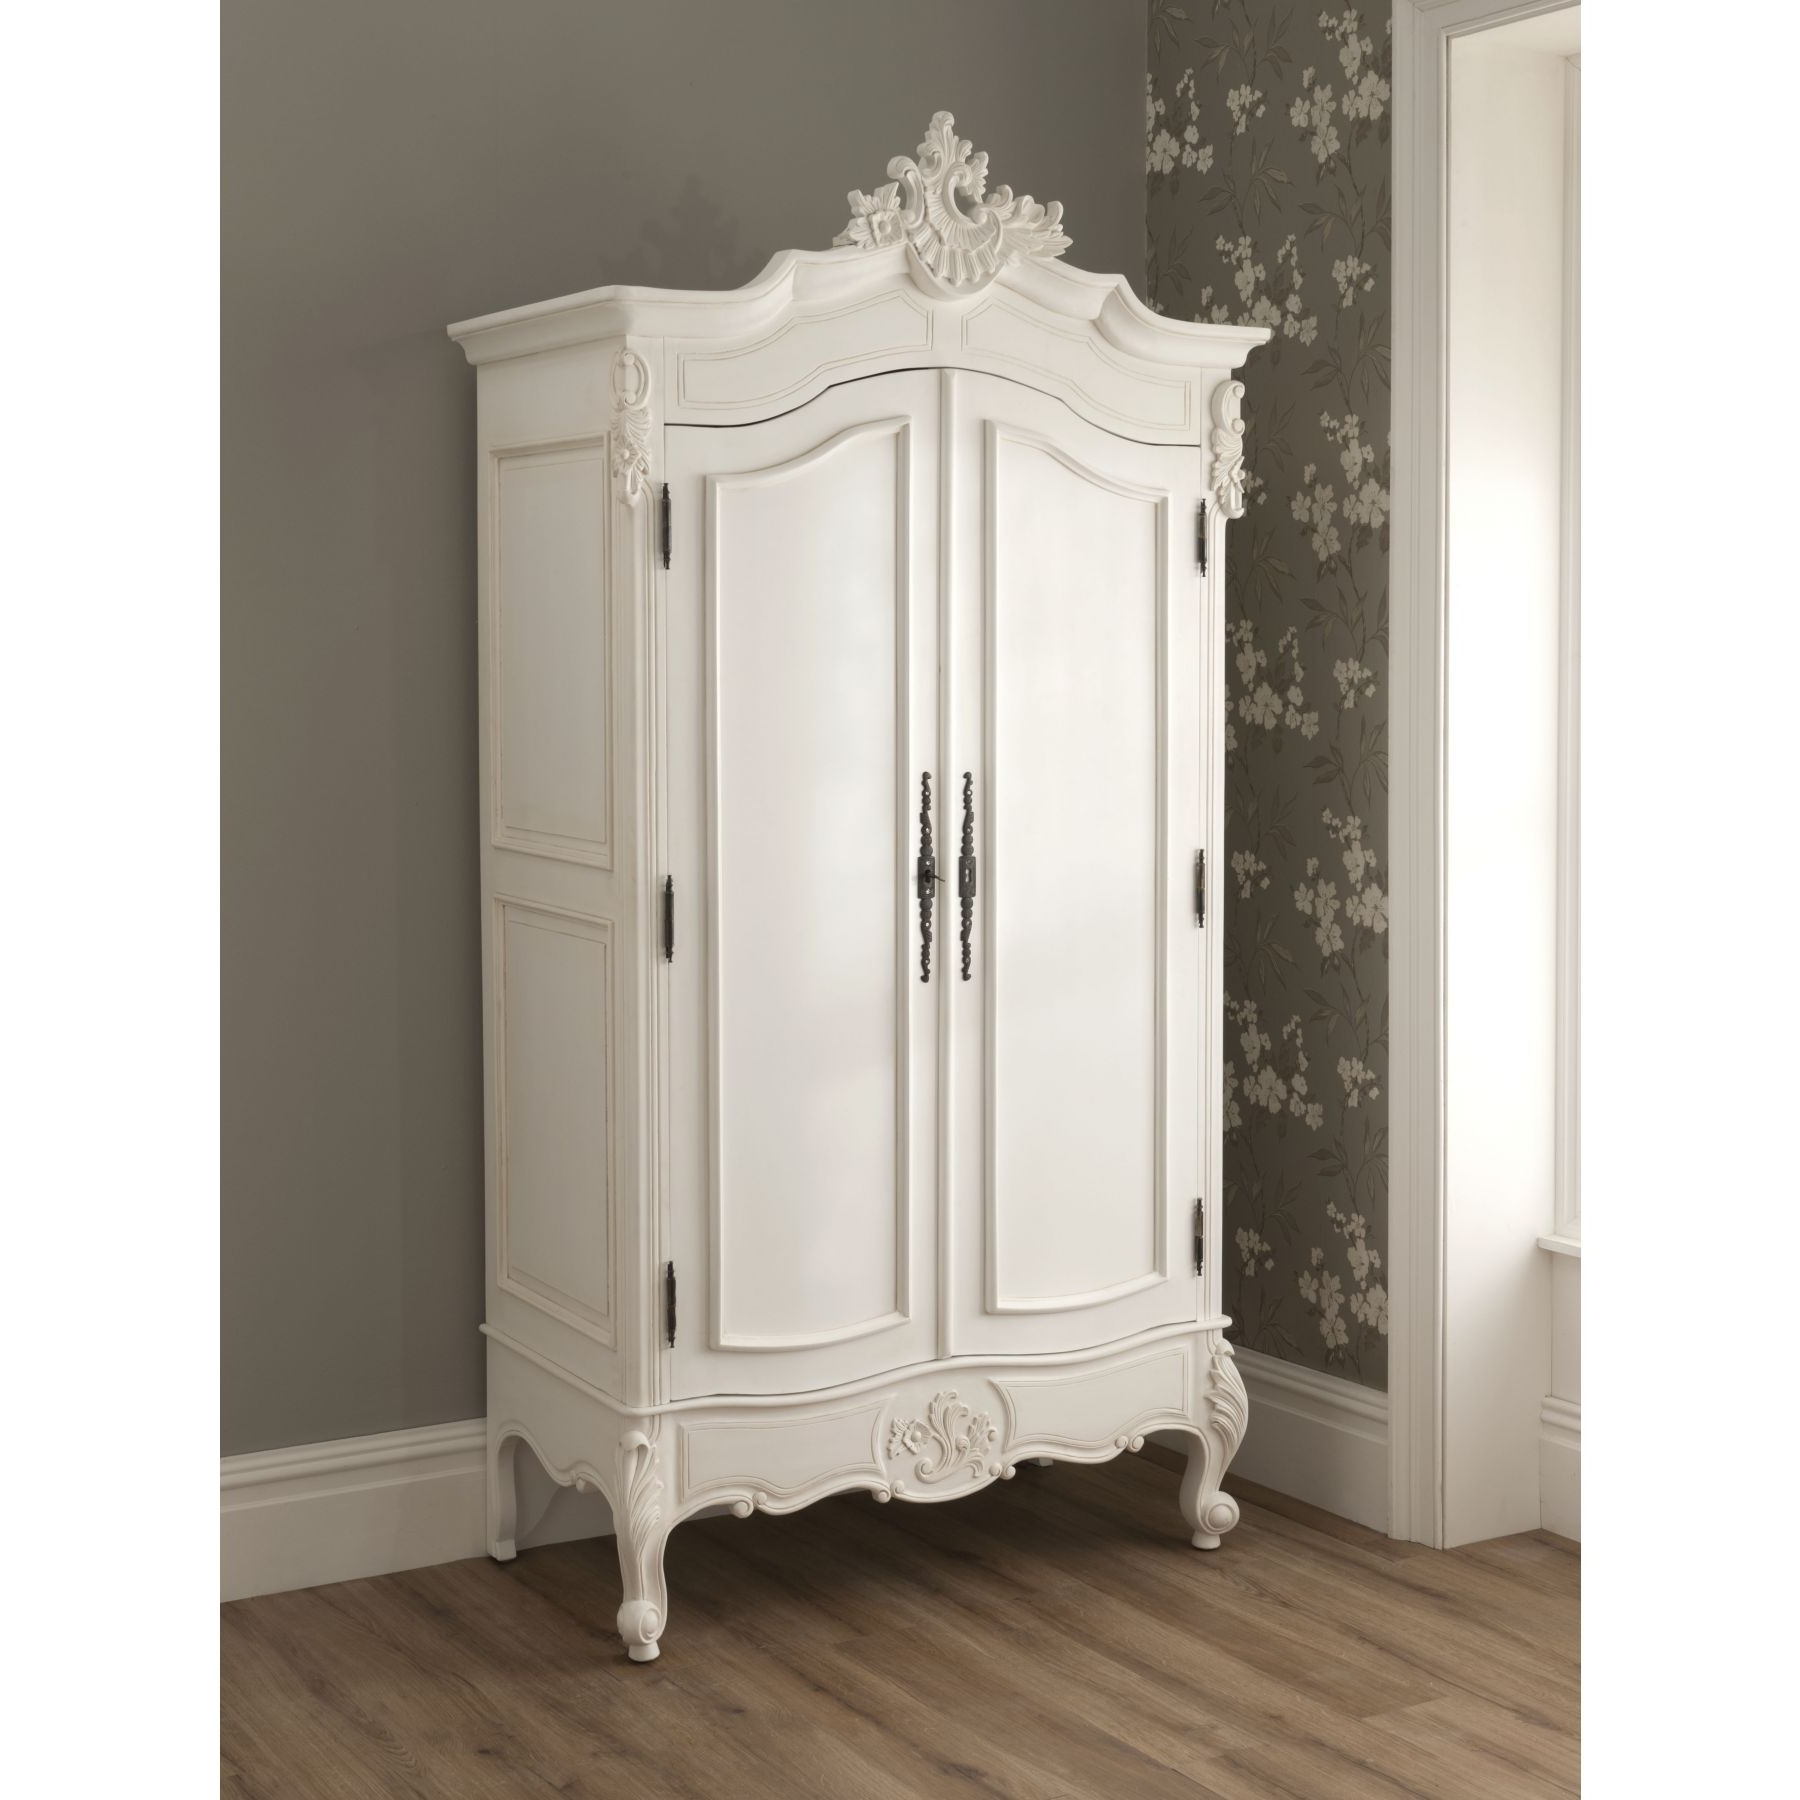 Old Fashioned Wardrobes Throughout Famous Vintage Wardrobe Paint And Design – Furnitureanddecors/decor (View 3 of 15)